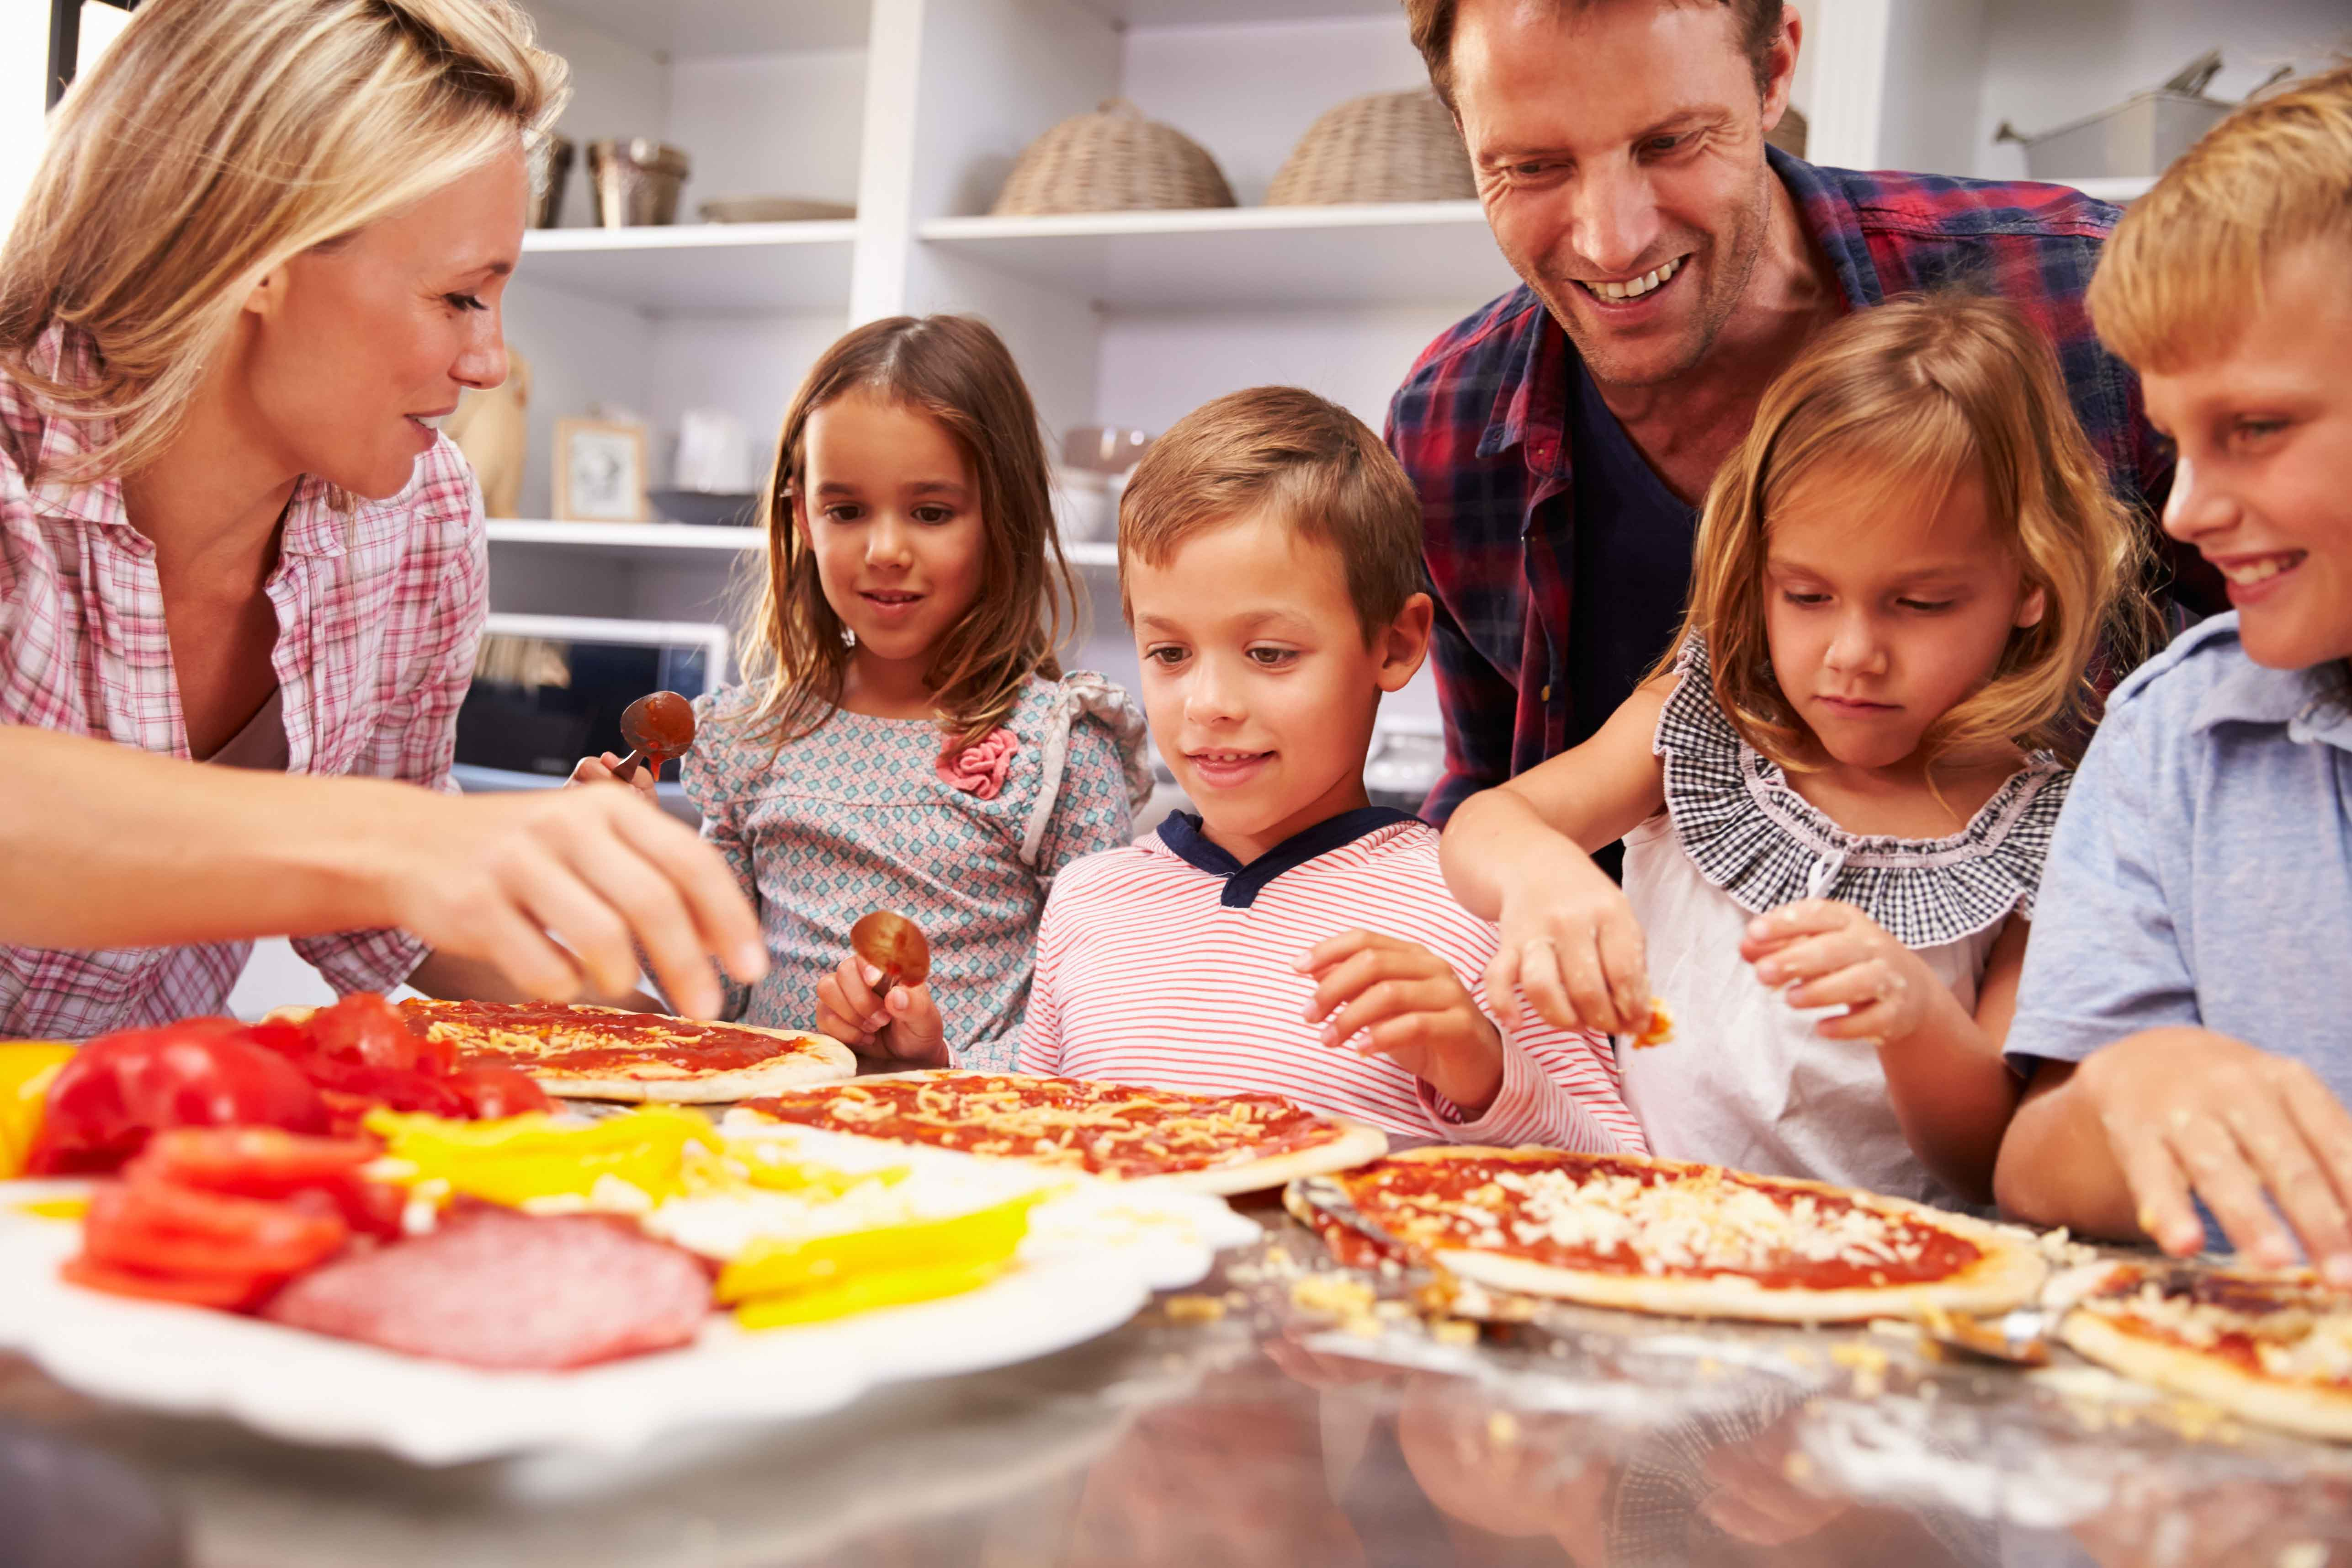 Make Mealtimes Less Stressful At Home By Making it Fun ...